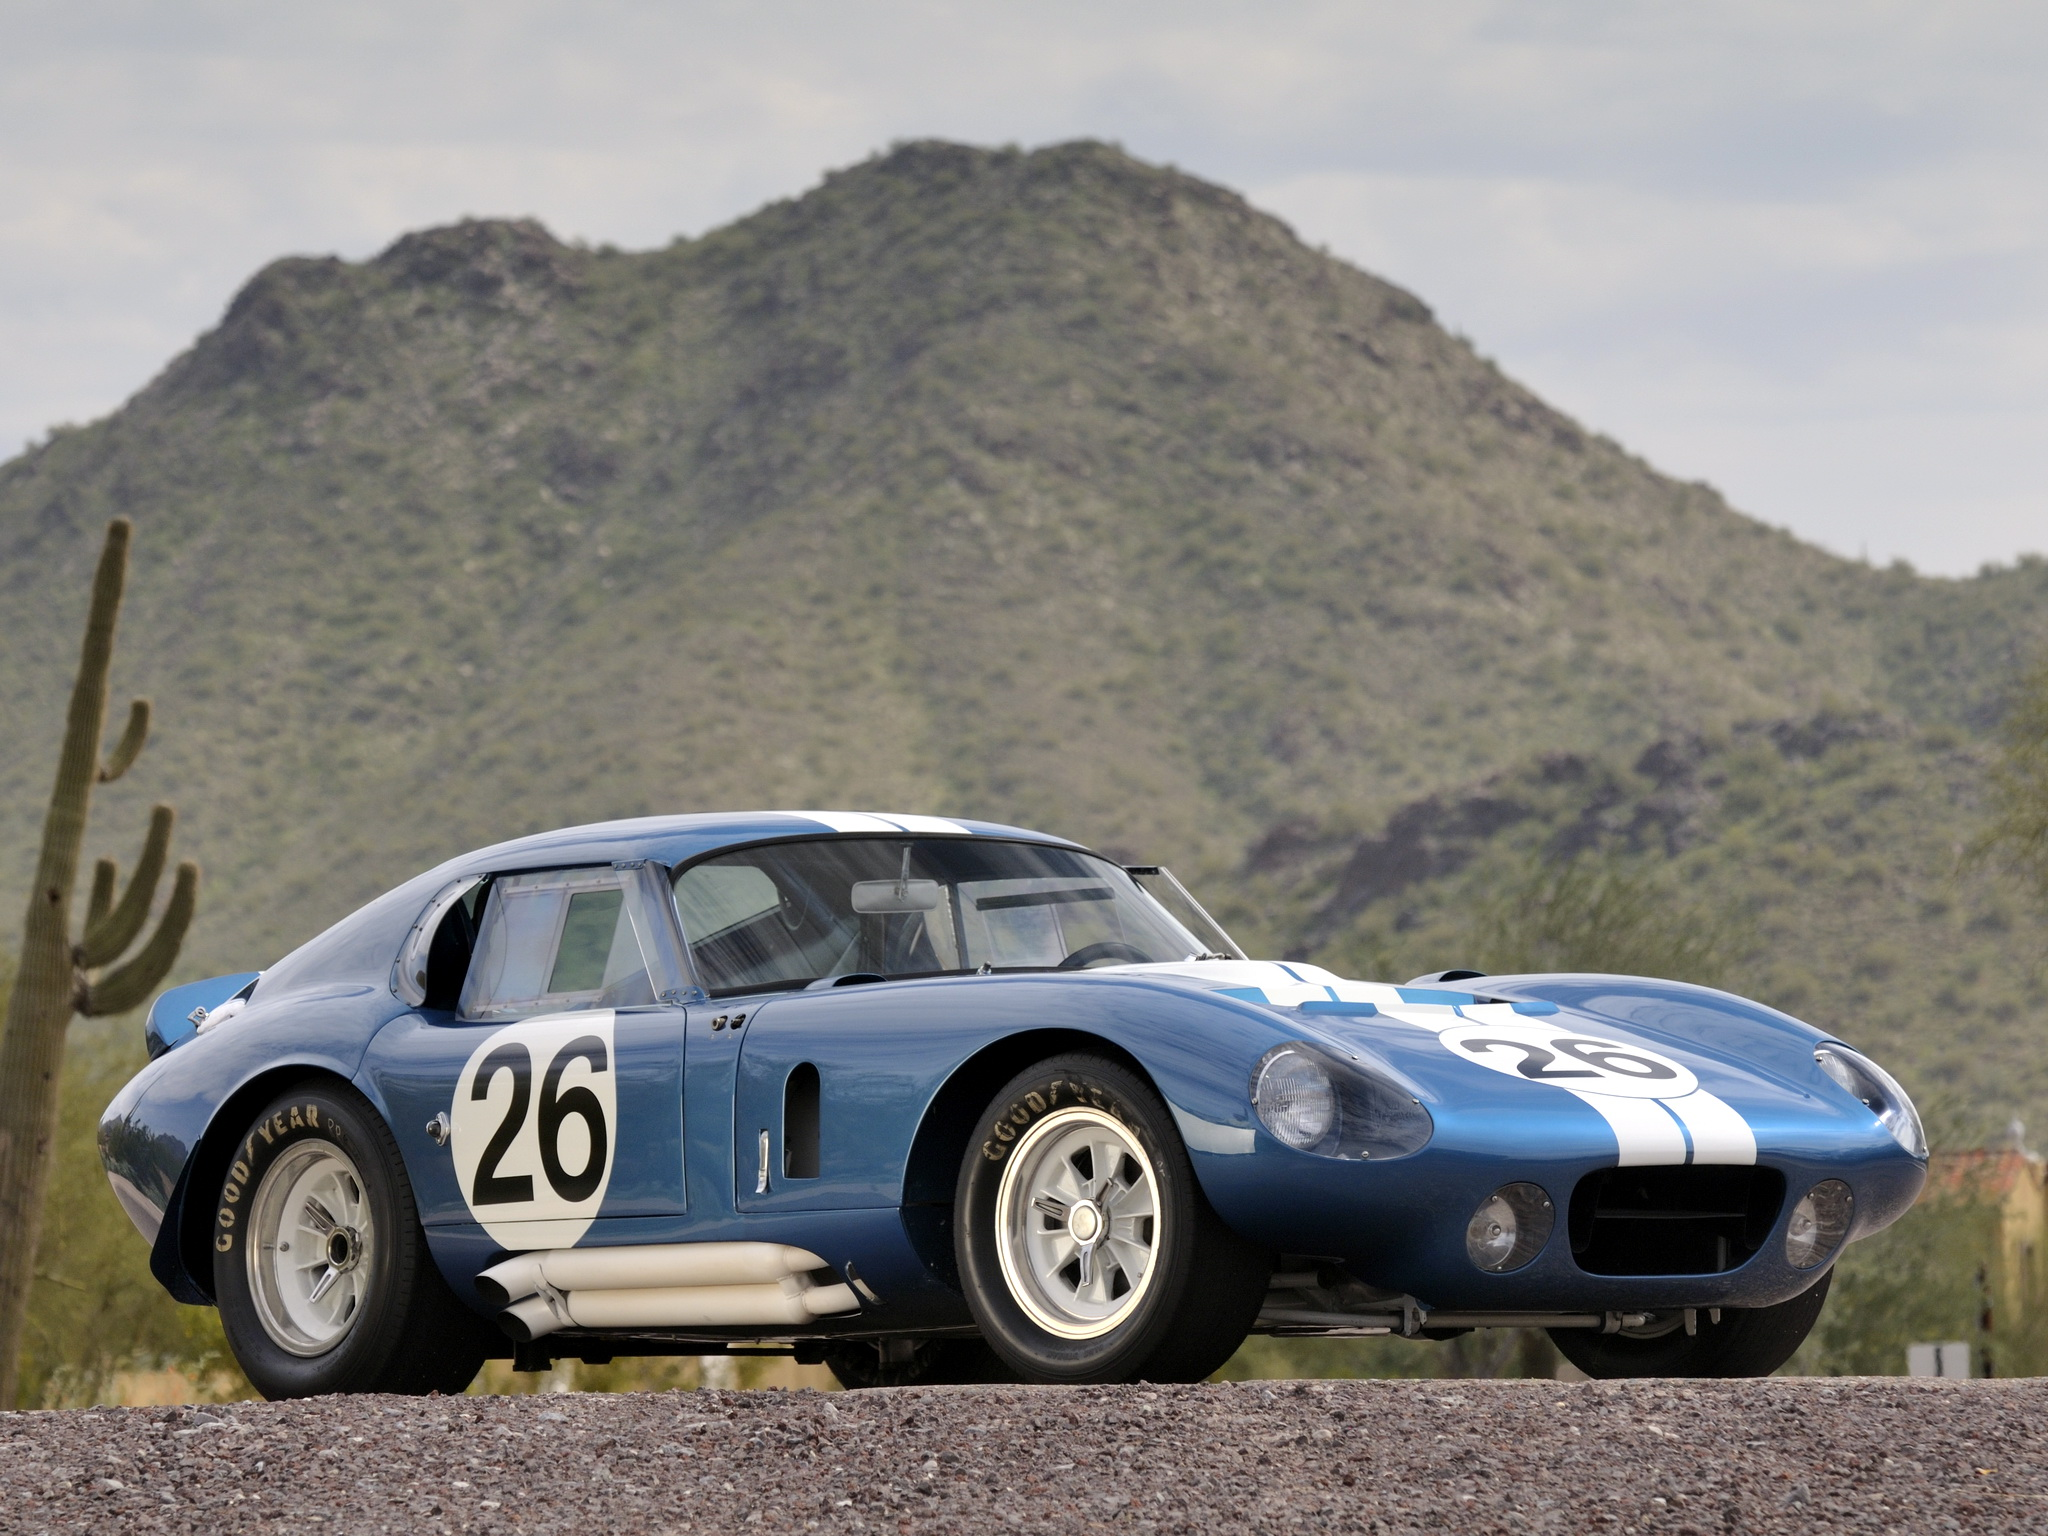 1964 Shelby A-C Cobra Daytona Coupe race racing supercar supercars muscle classic q